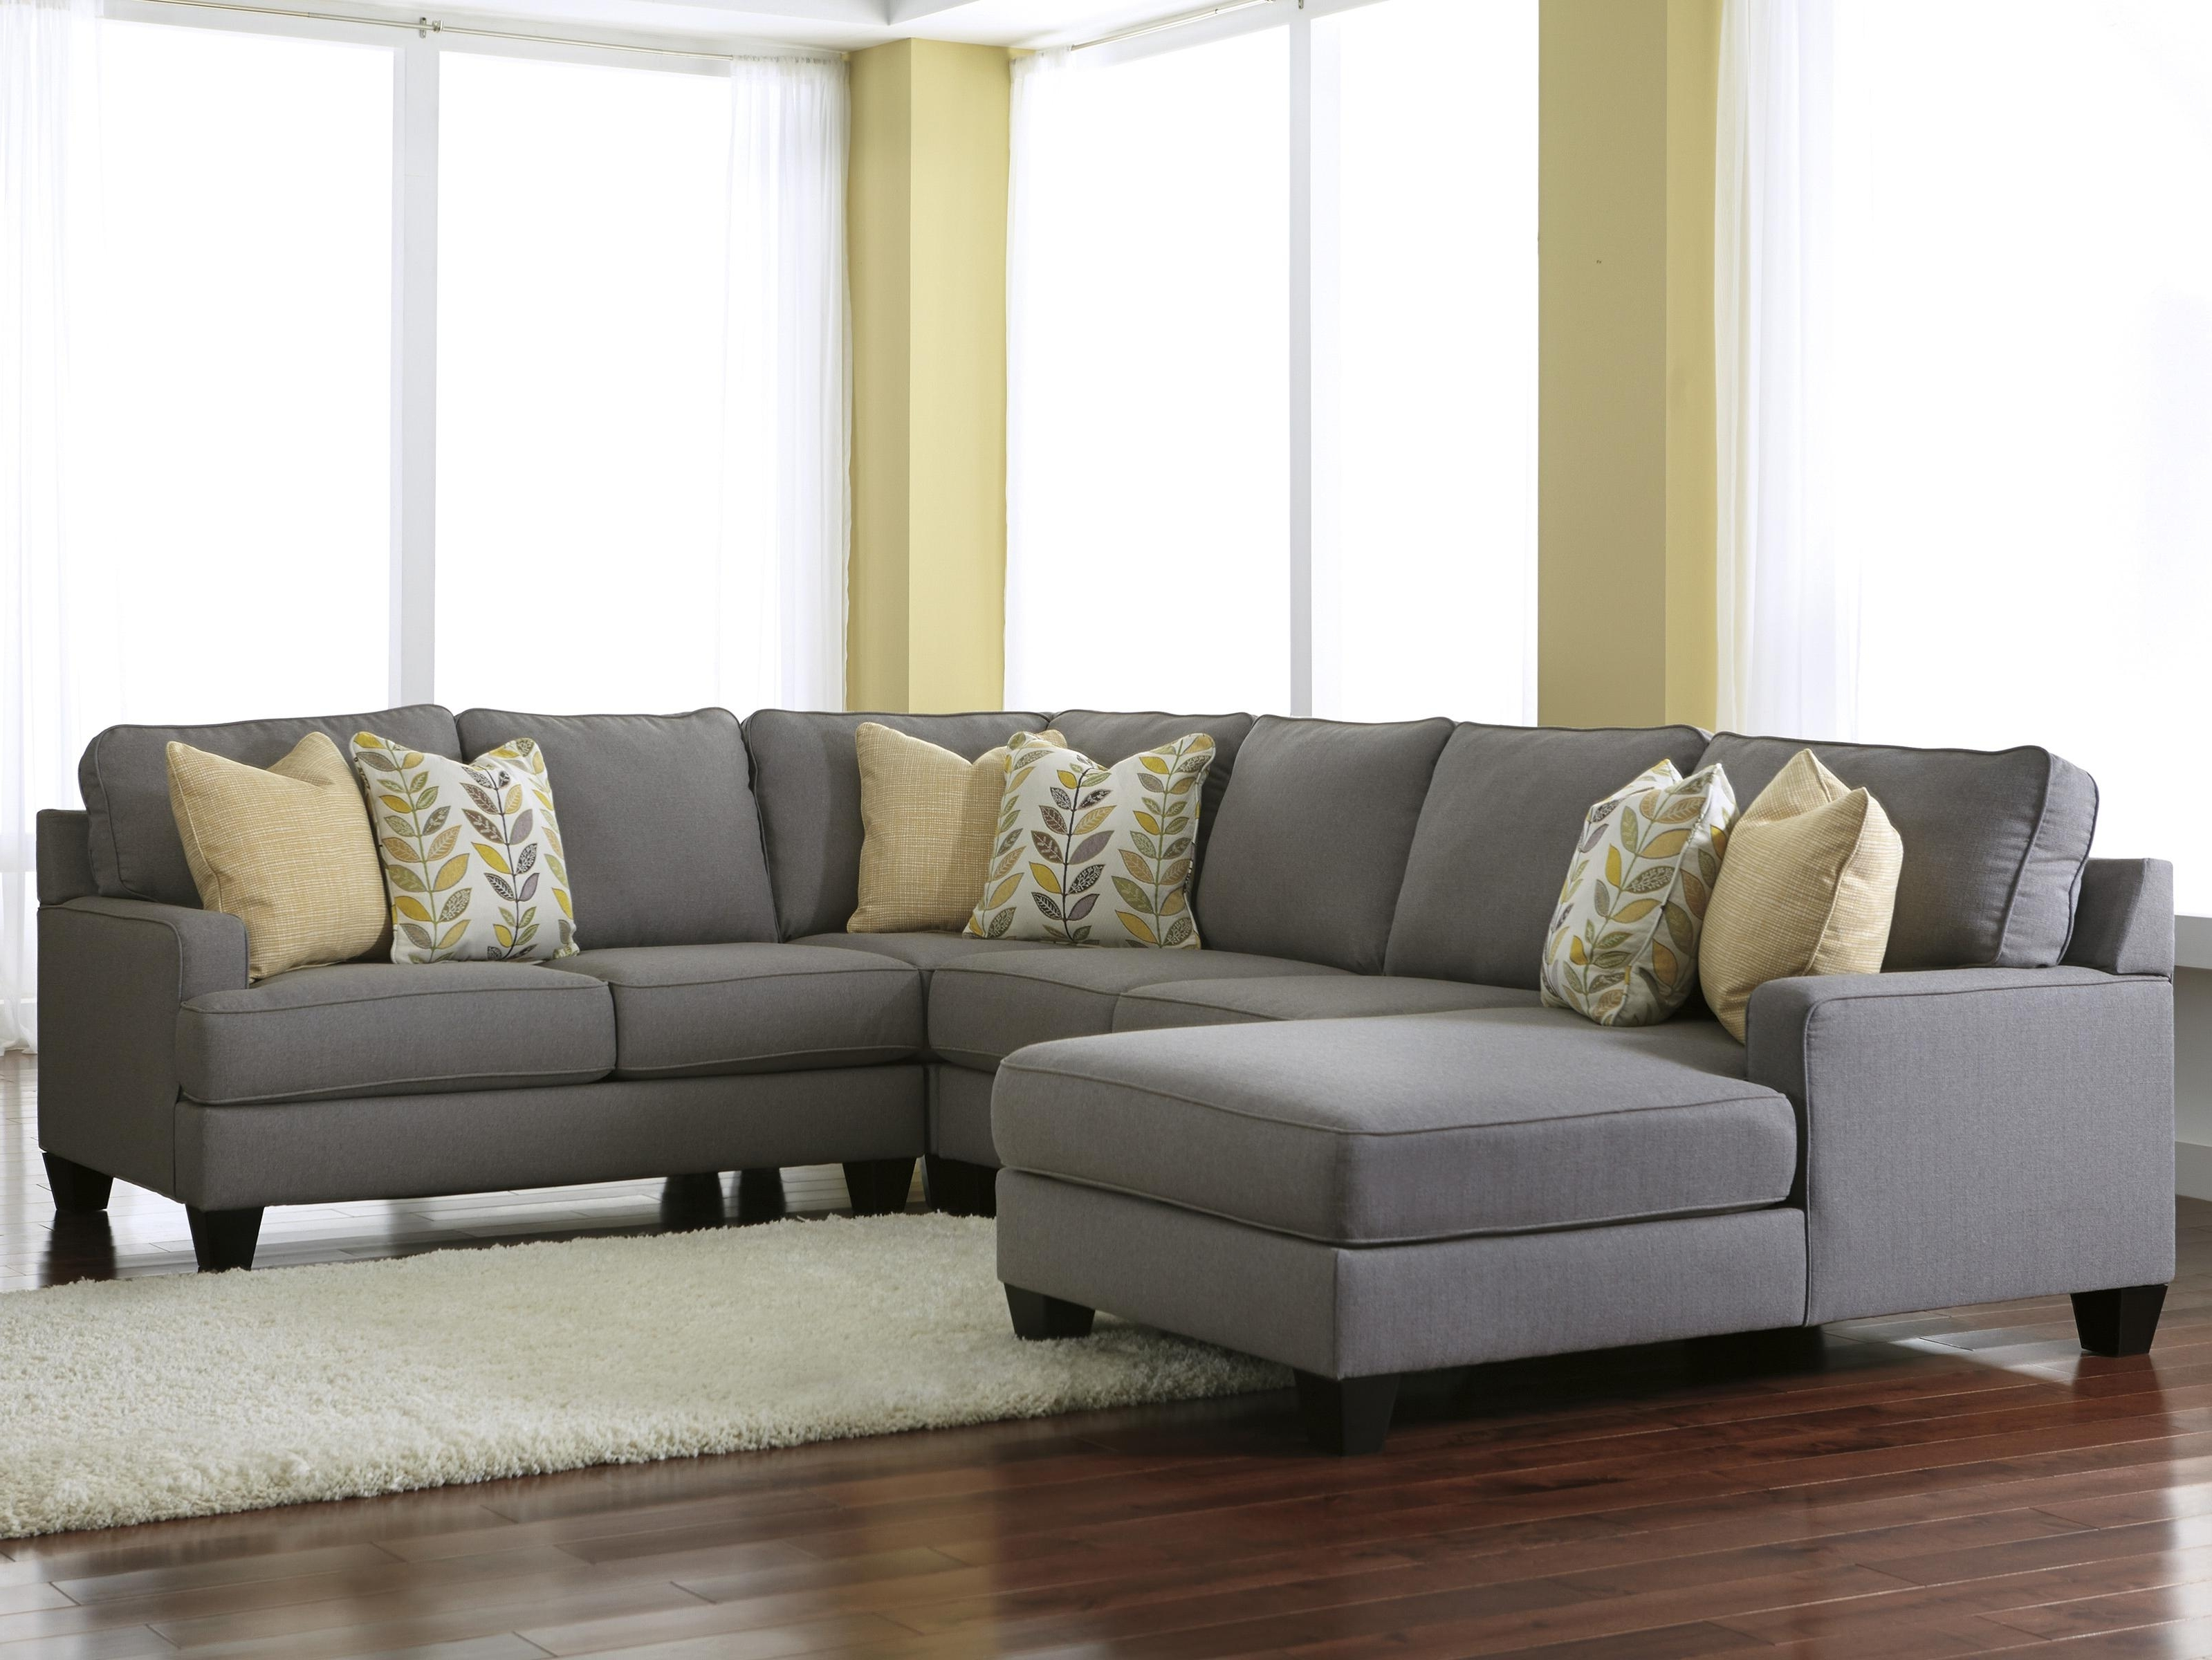 2018 2 Seat Sectional Sofas In Modern 4 Piece Sectional Sofa With Left Chaise & Reversible Seat (View 4 of 15)